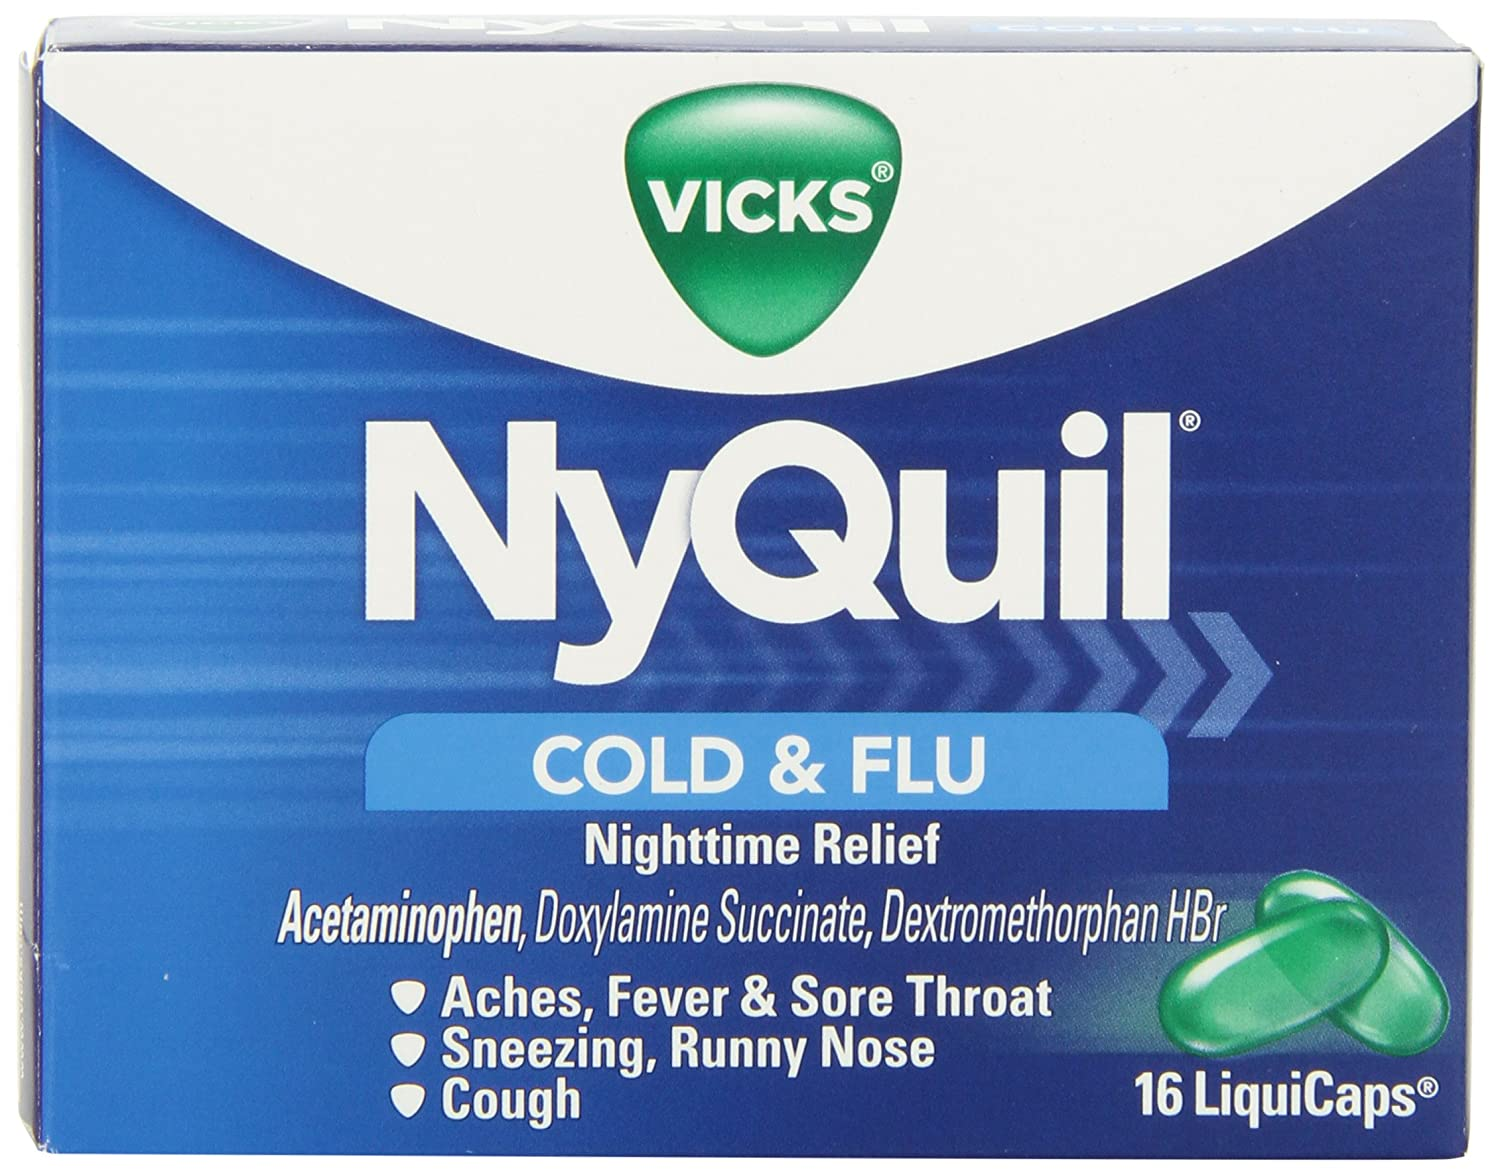 how to use vicks for a cold